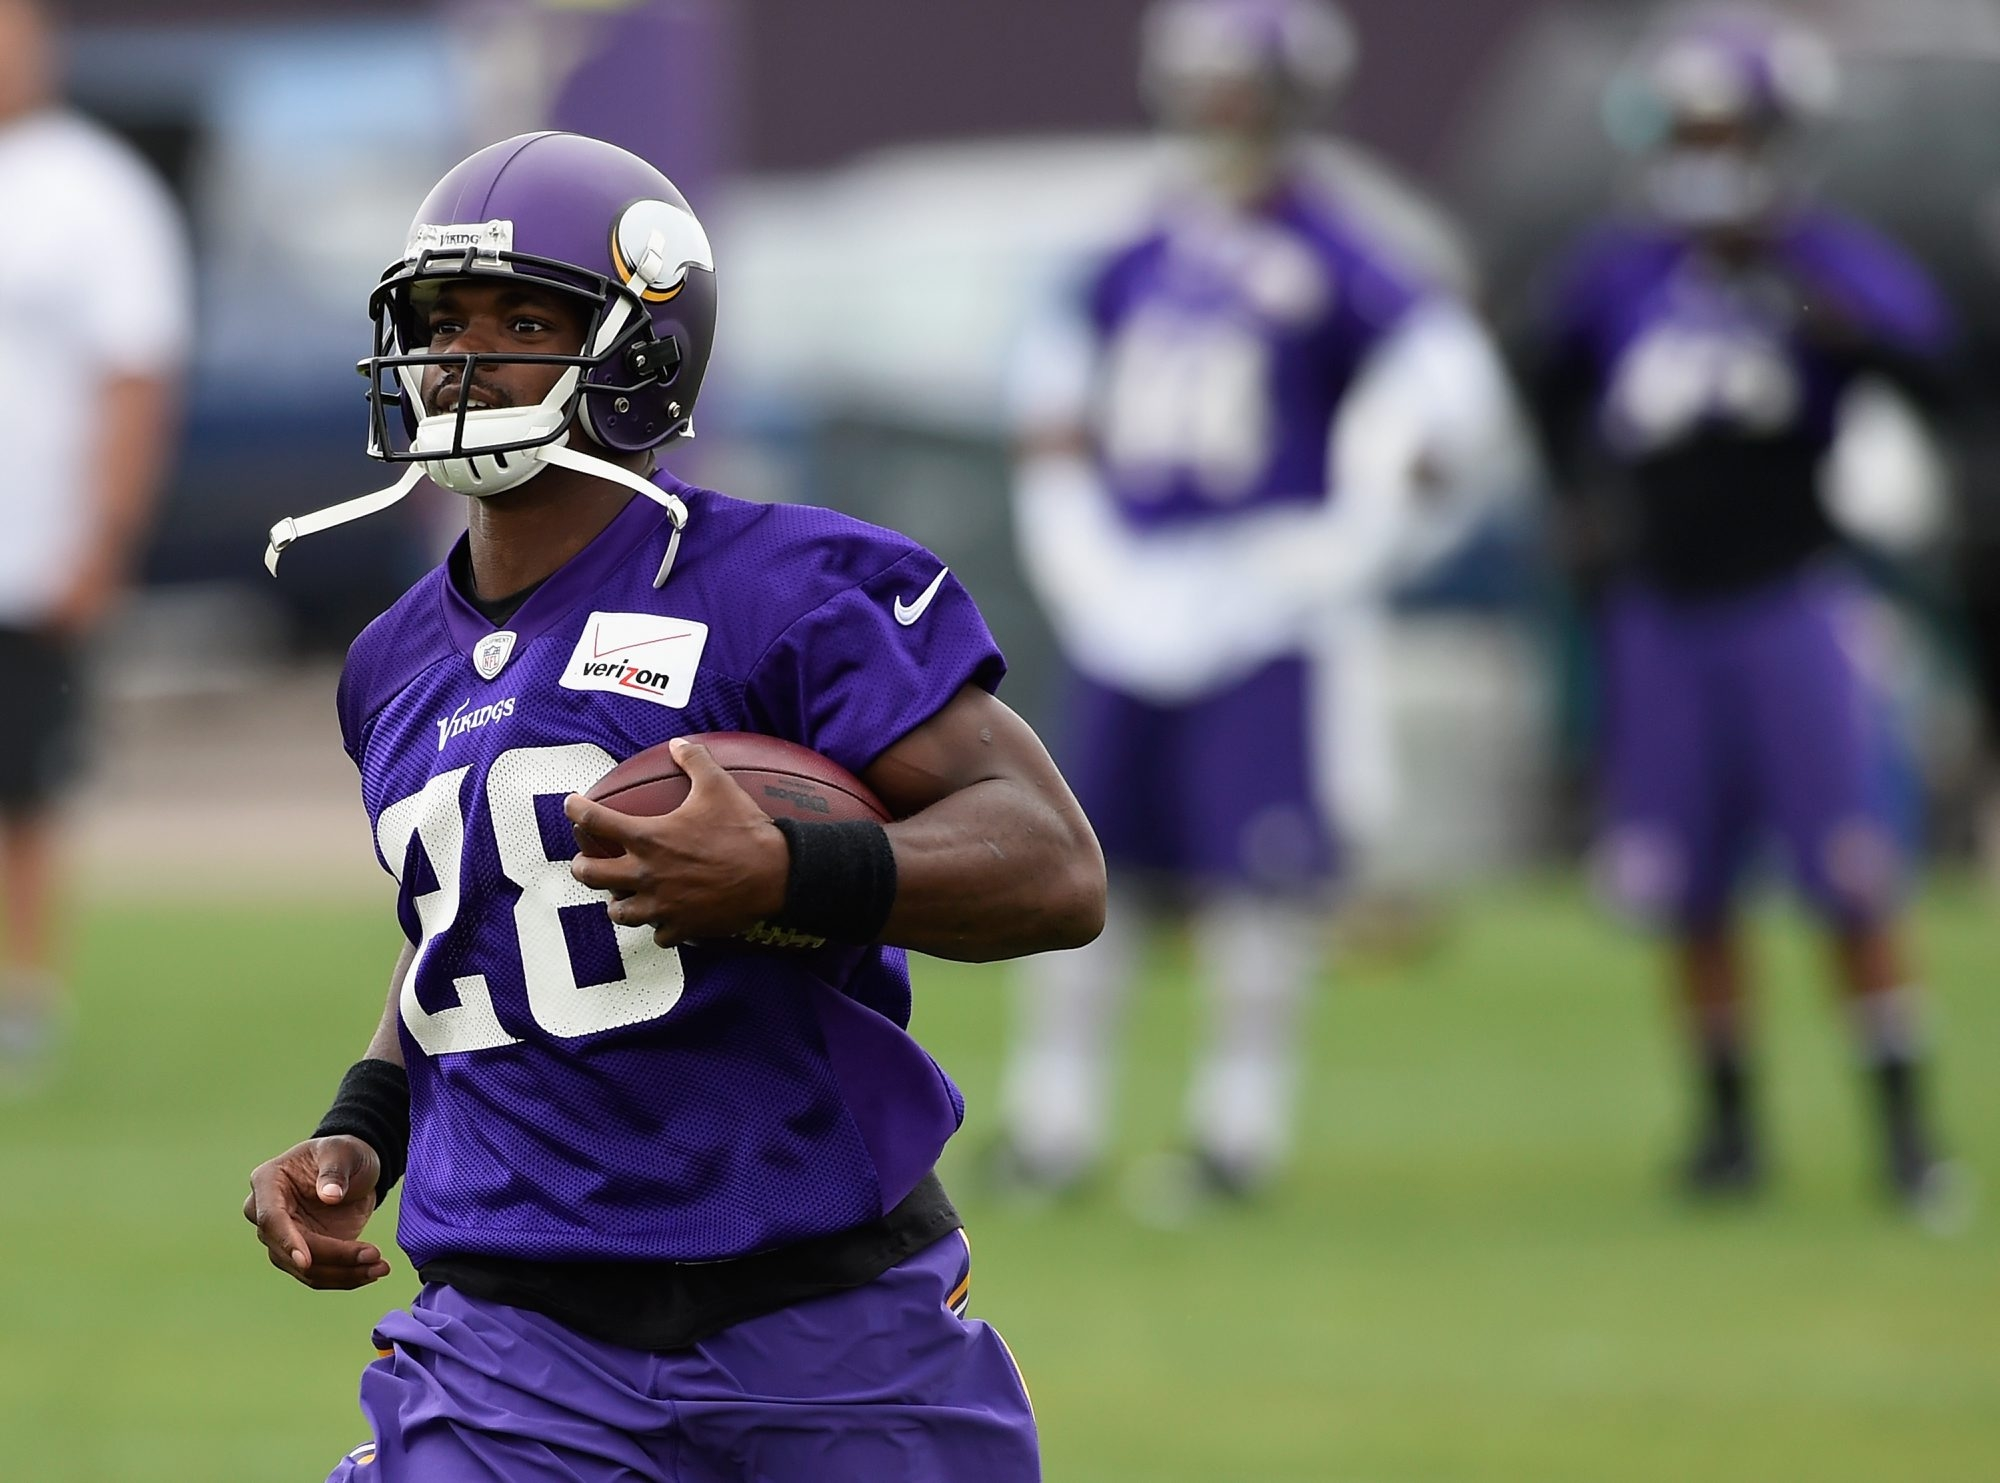 The Vikings' Adrian Peterson missed nearly all of last season and could have fresh legs for 2015.